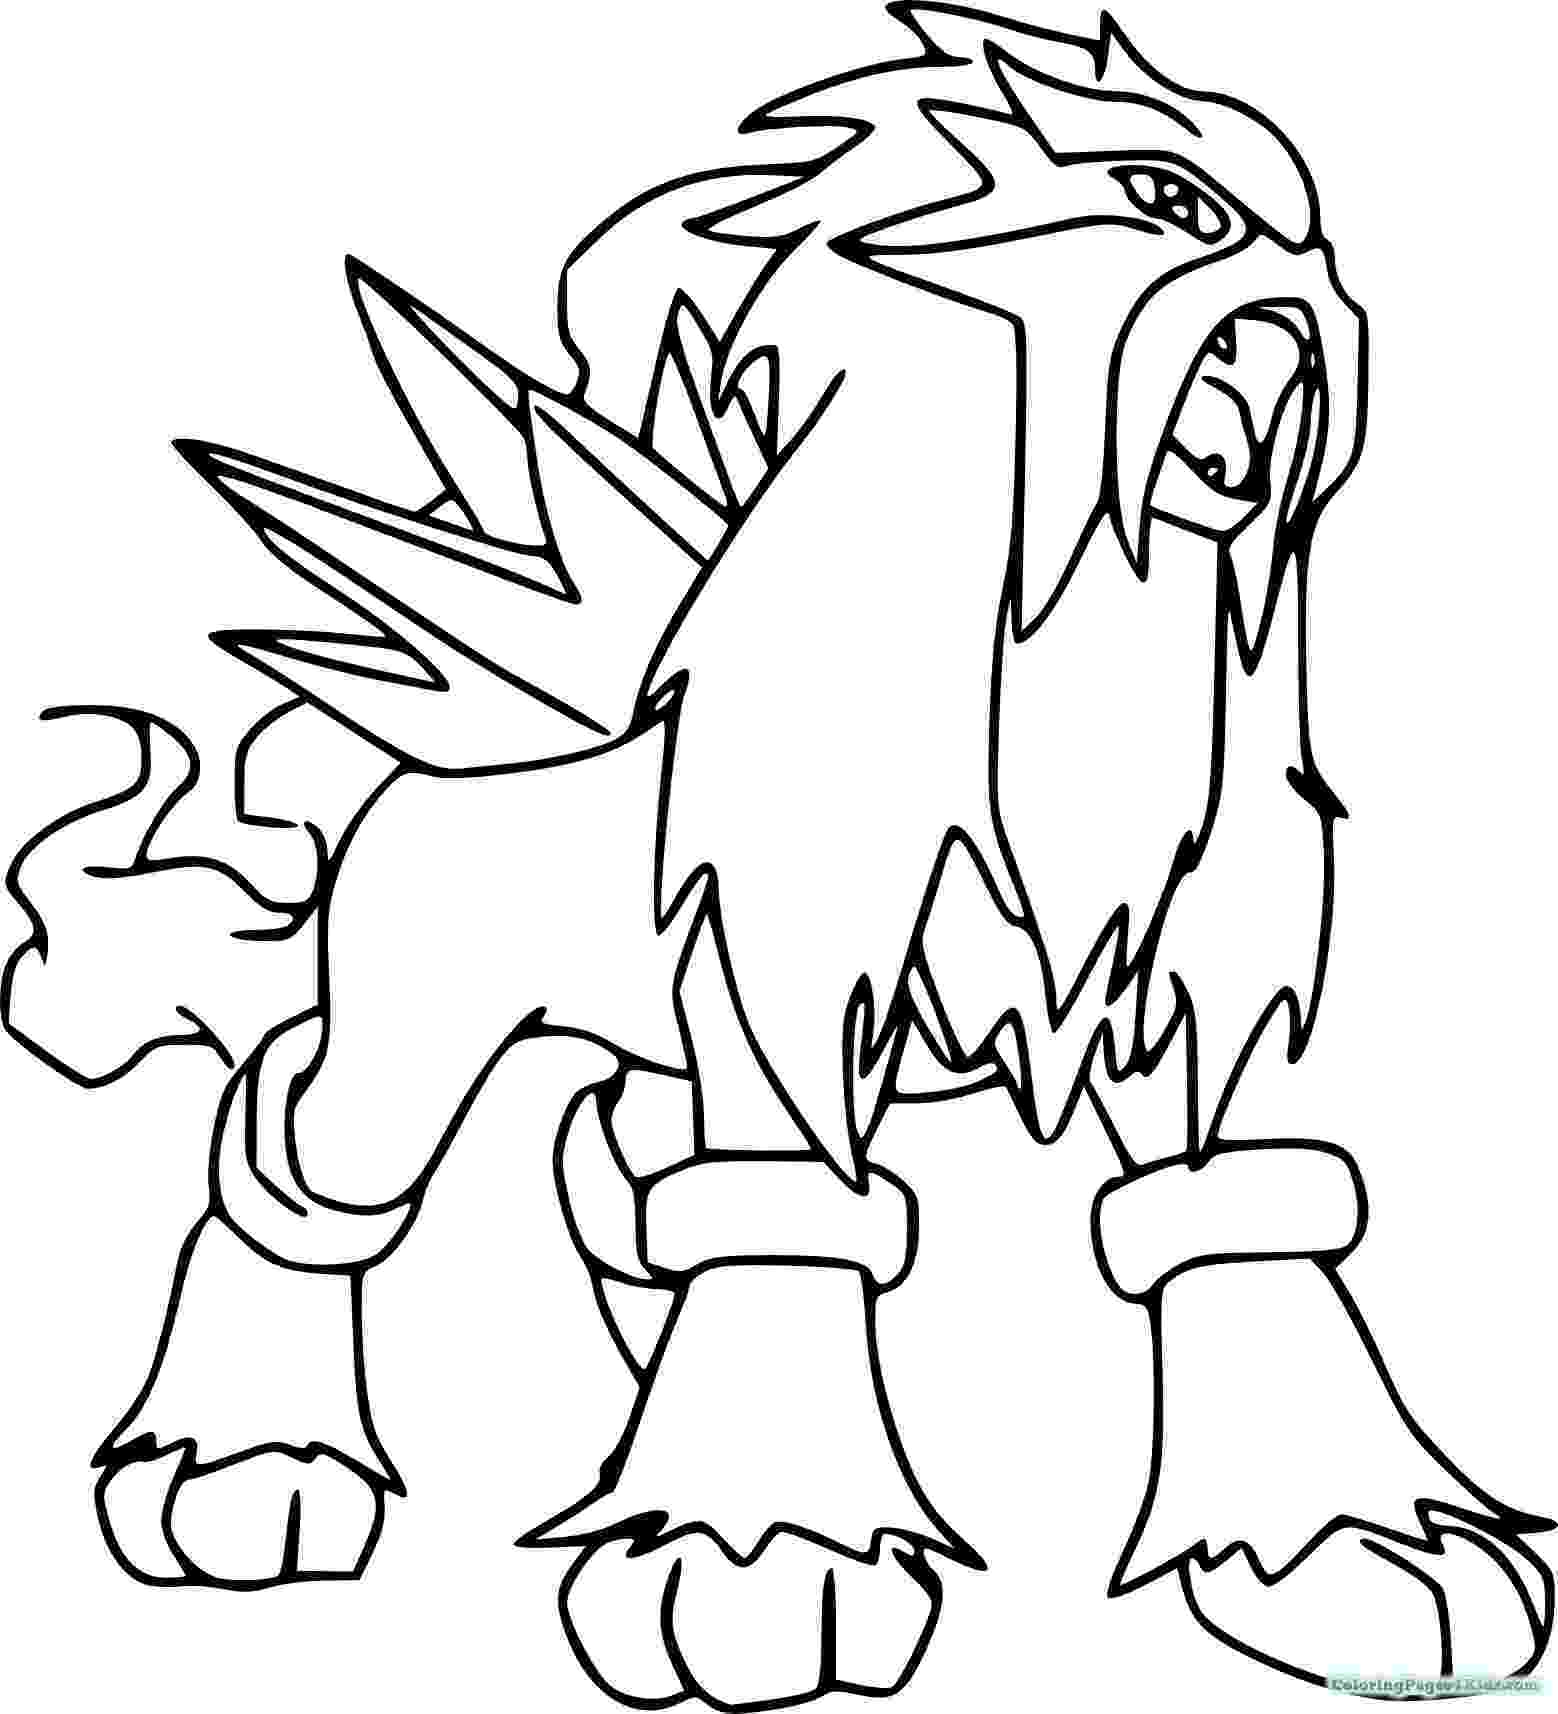 legendary pokemon coloring pages free legendary pokemon coloring pages for kids legendary pokemon coloring pages